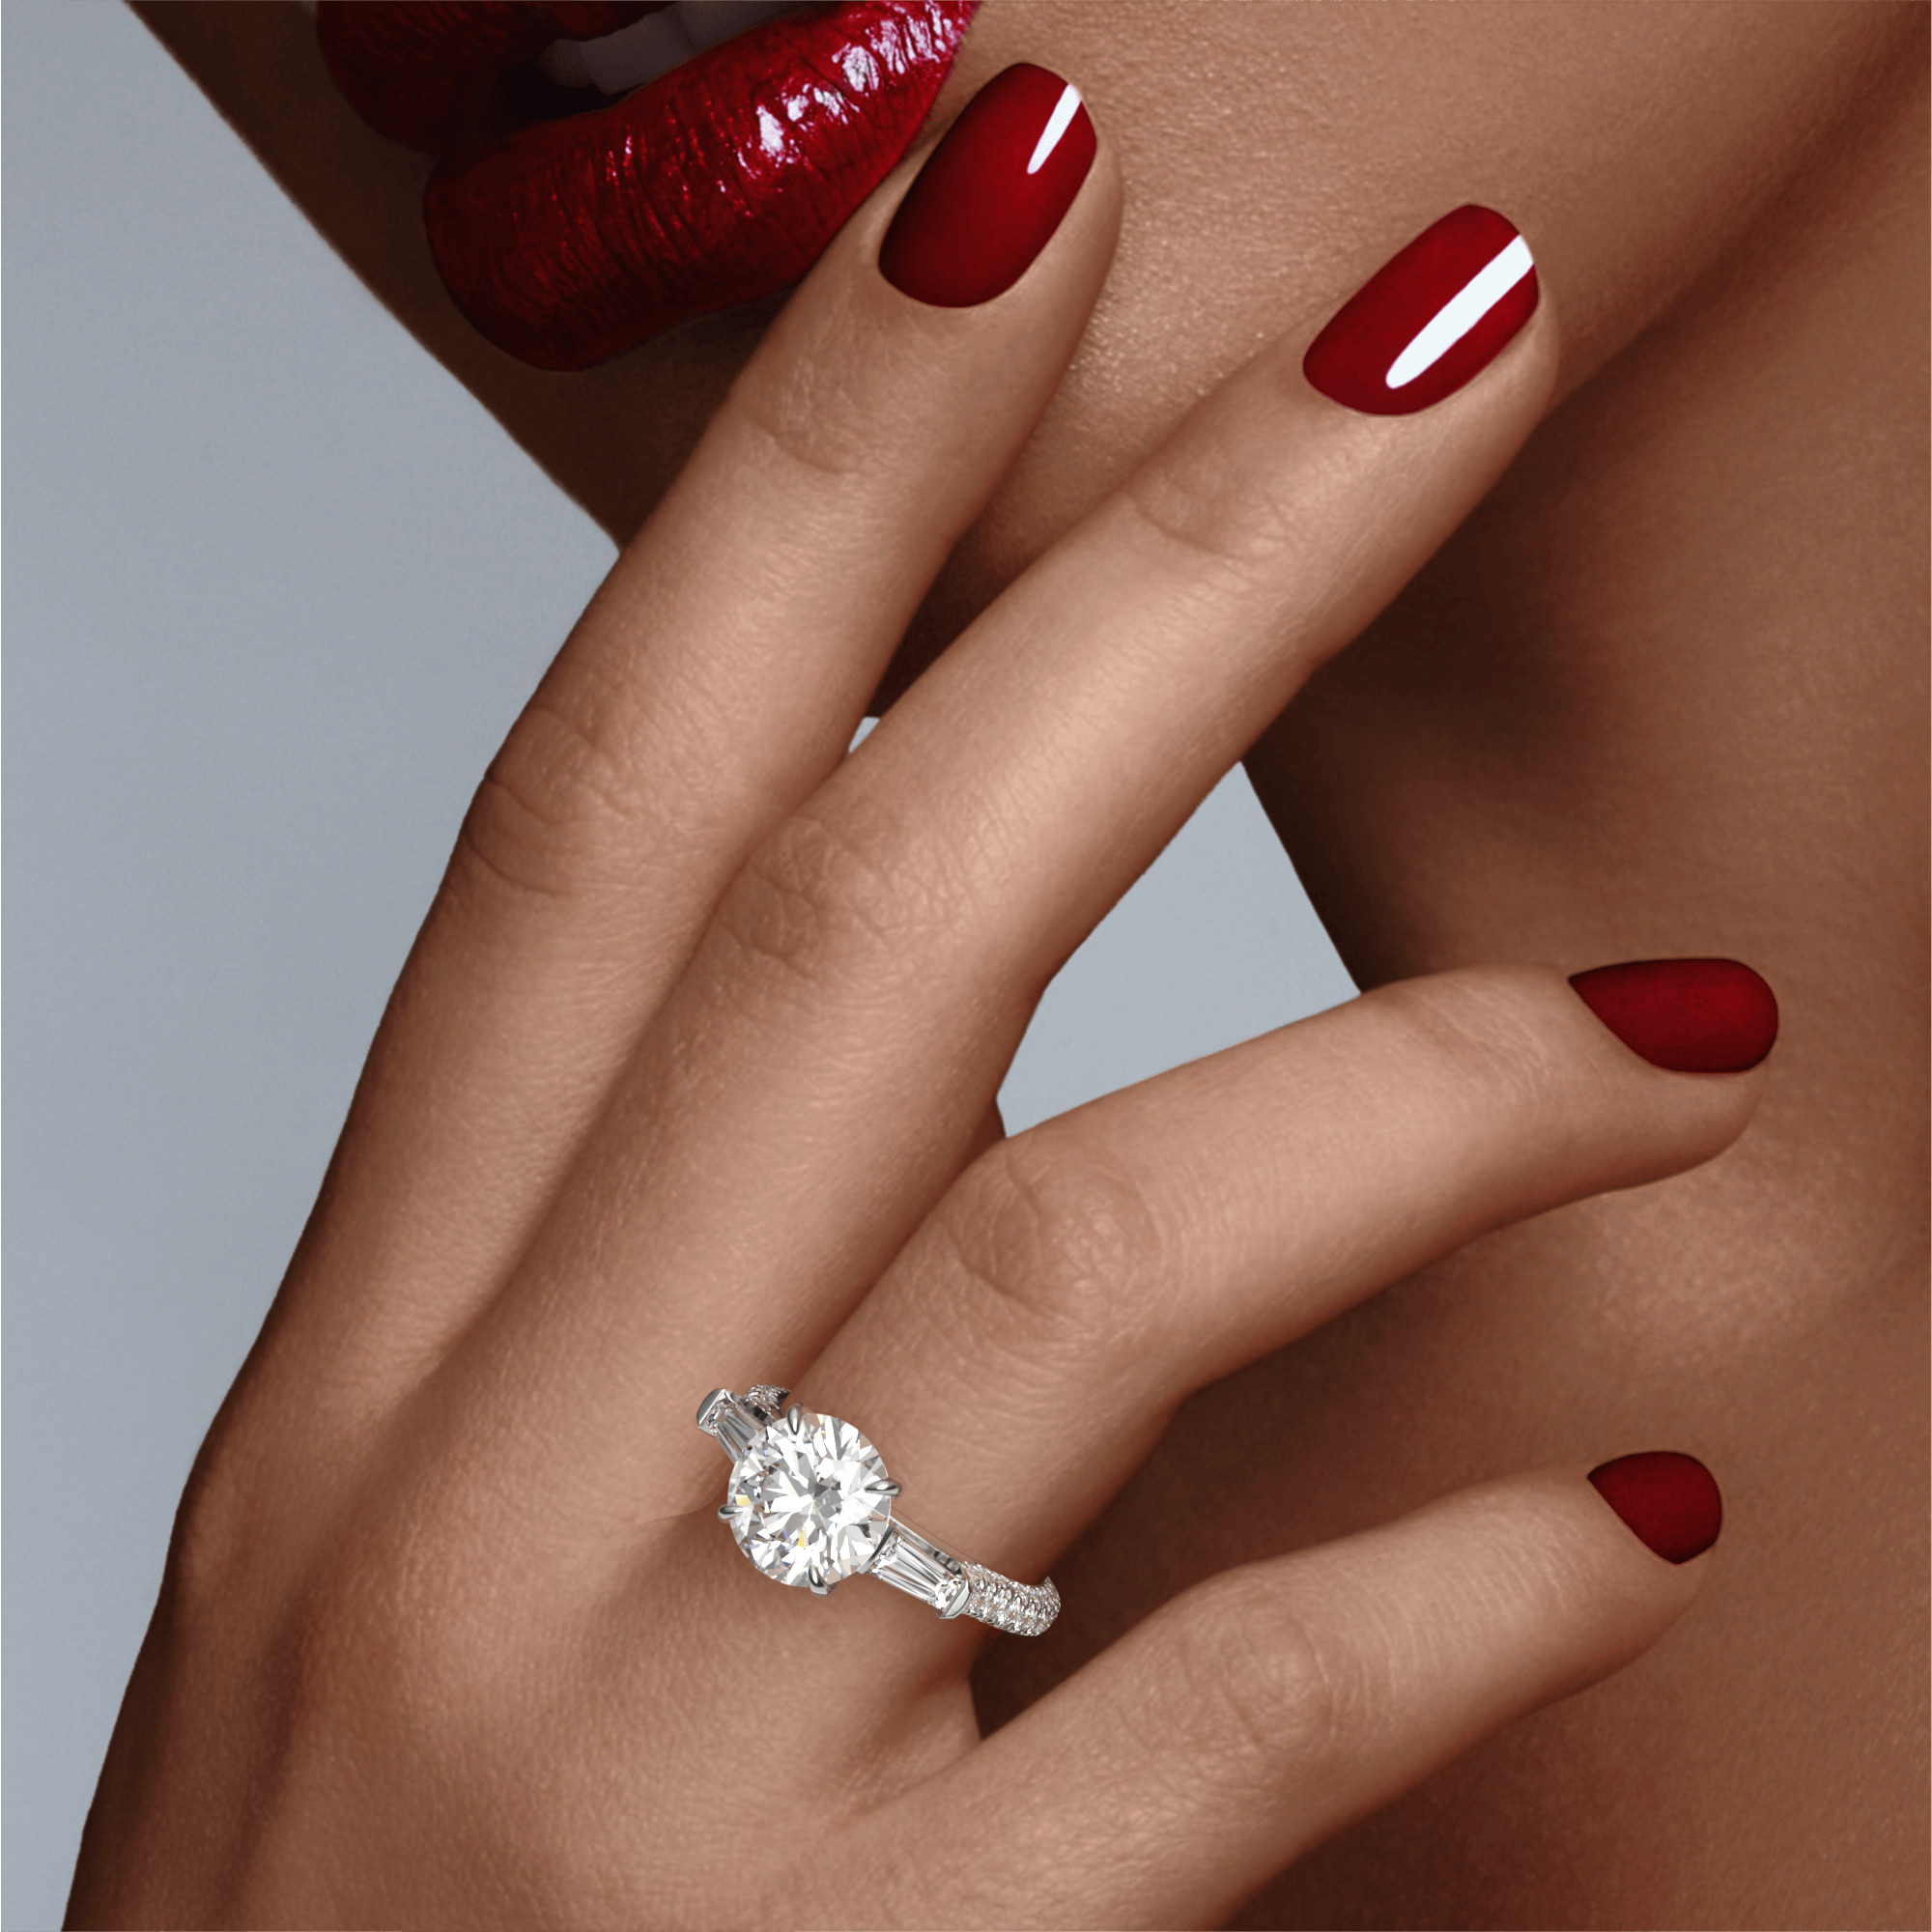 ROUND CUT, BAGUETTE FLANK SETTING, THREE PHASES TRIPLE PAVE, PLATINUM